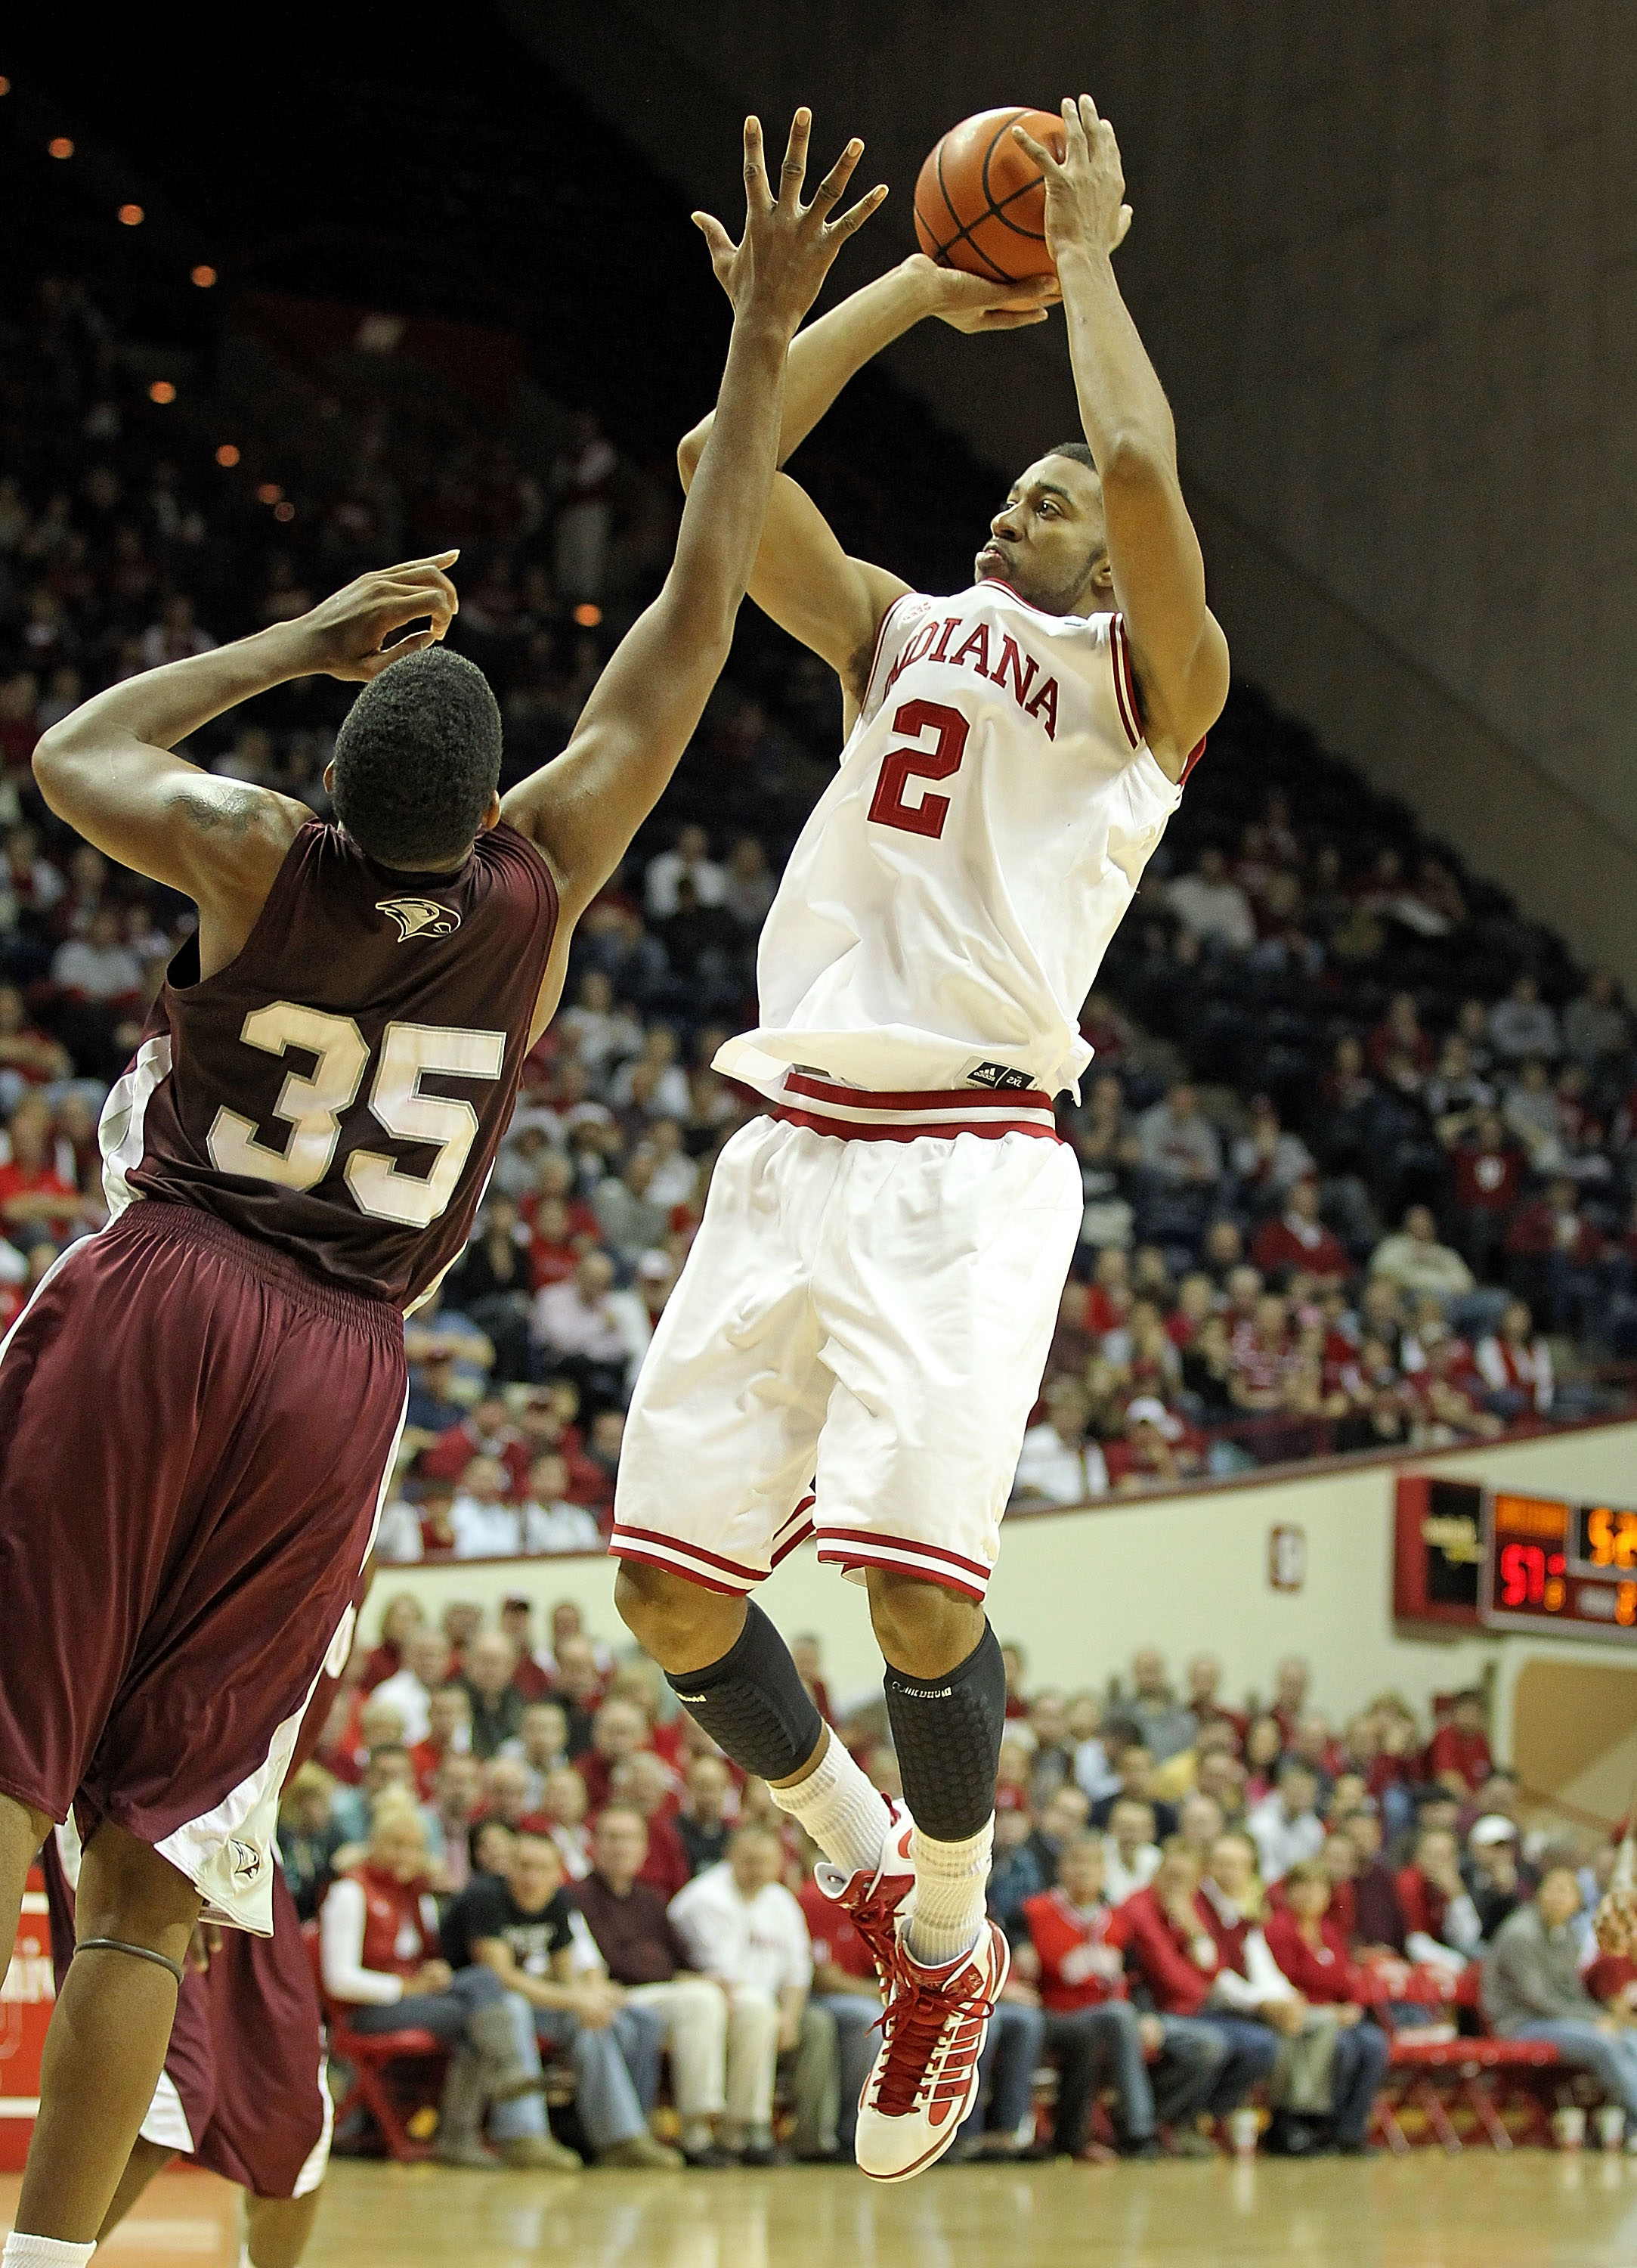 BLOOMINGTON, IN - NOVEMBER 23:  Christian Watford #2 of the Indiana Hoosiers shoots the ball during the game against the North Carolina Central Eagles at Assembly Hall on November 23, 2010 in Bloomington, Indiana.  Indiana won 72-56.(Photo by Andy Lyons/G